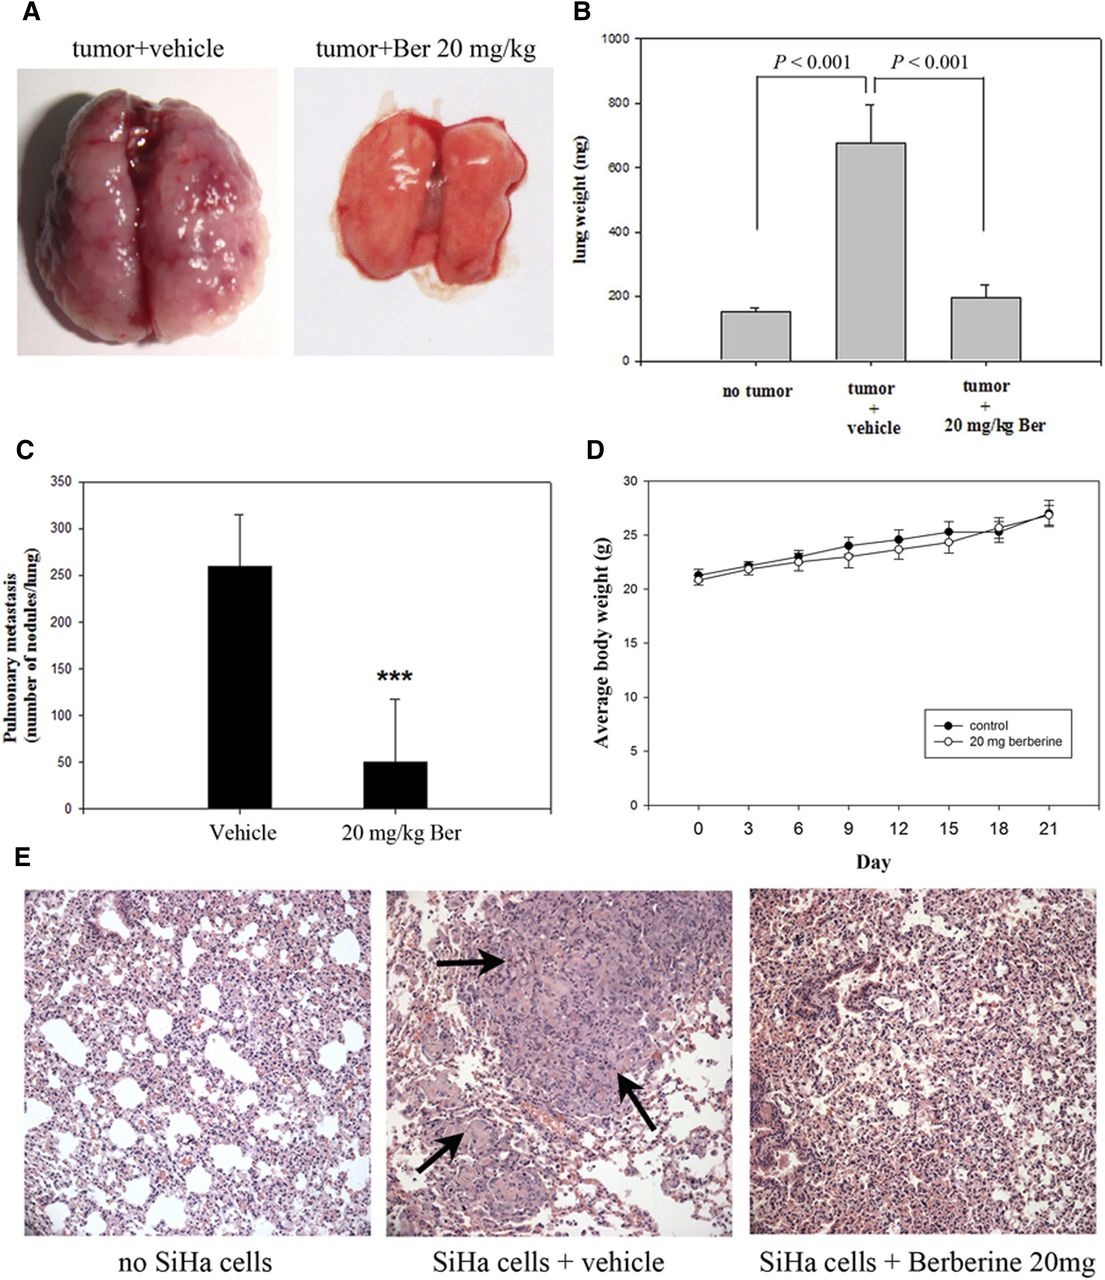 Metastatic lung tumor nodules induced by TL-1 and SiHa